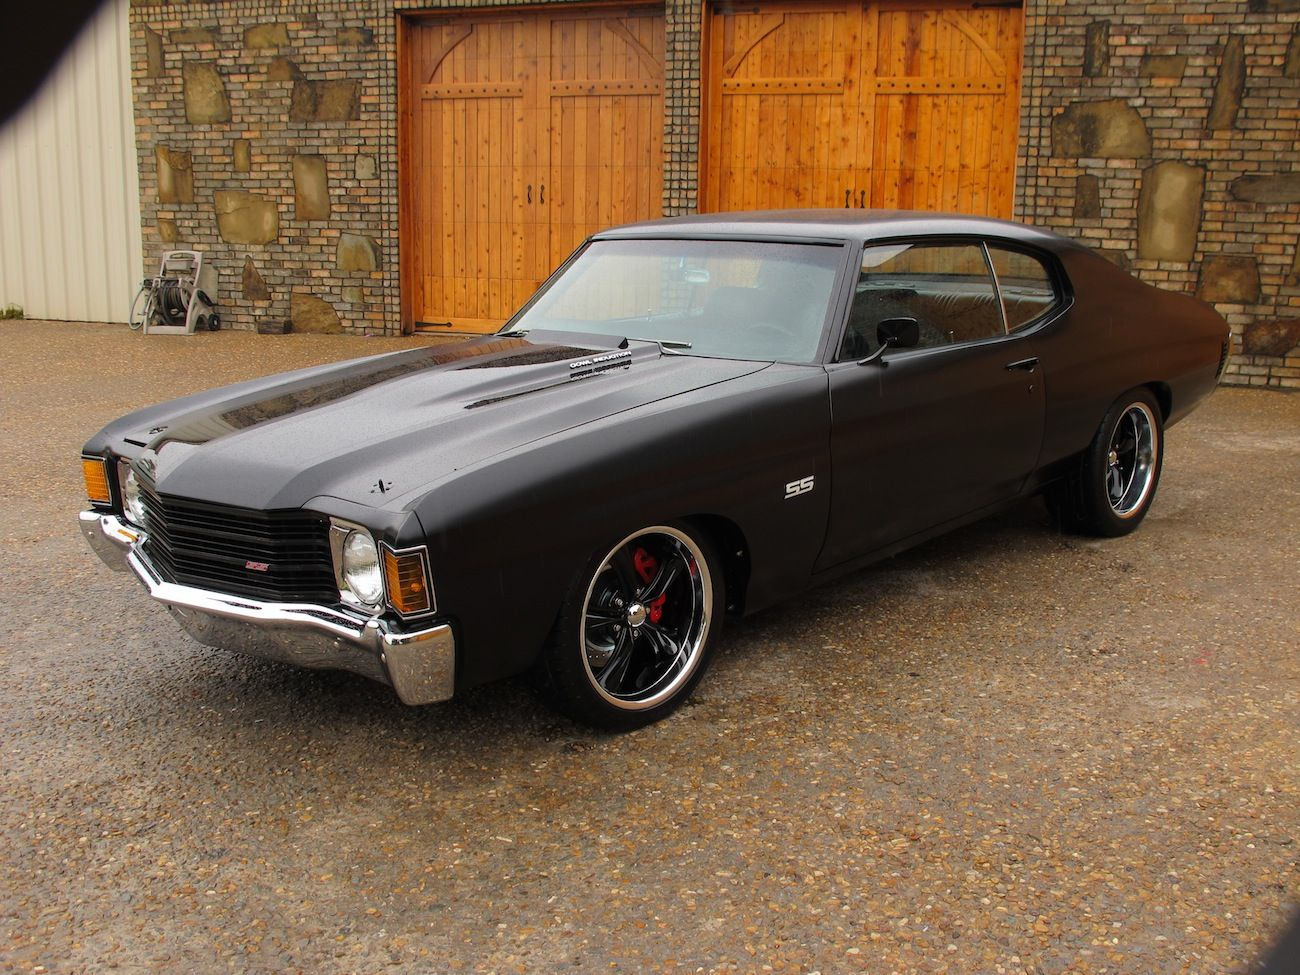 muscle cars for sale 1970-72 Chevelle pro-touring builds - Atlas ...